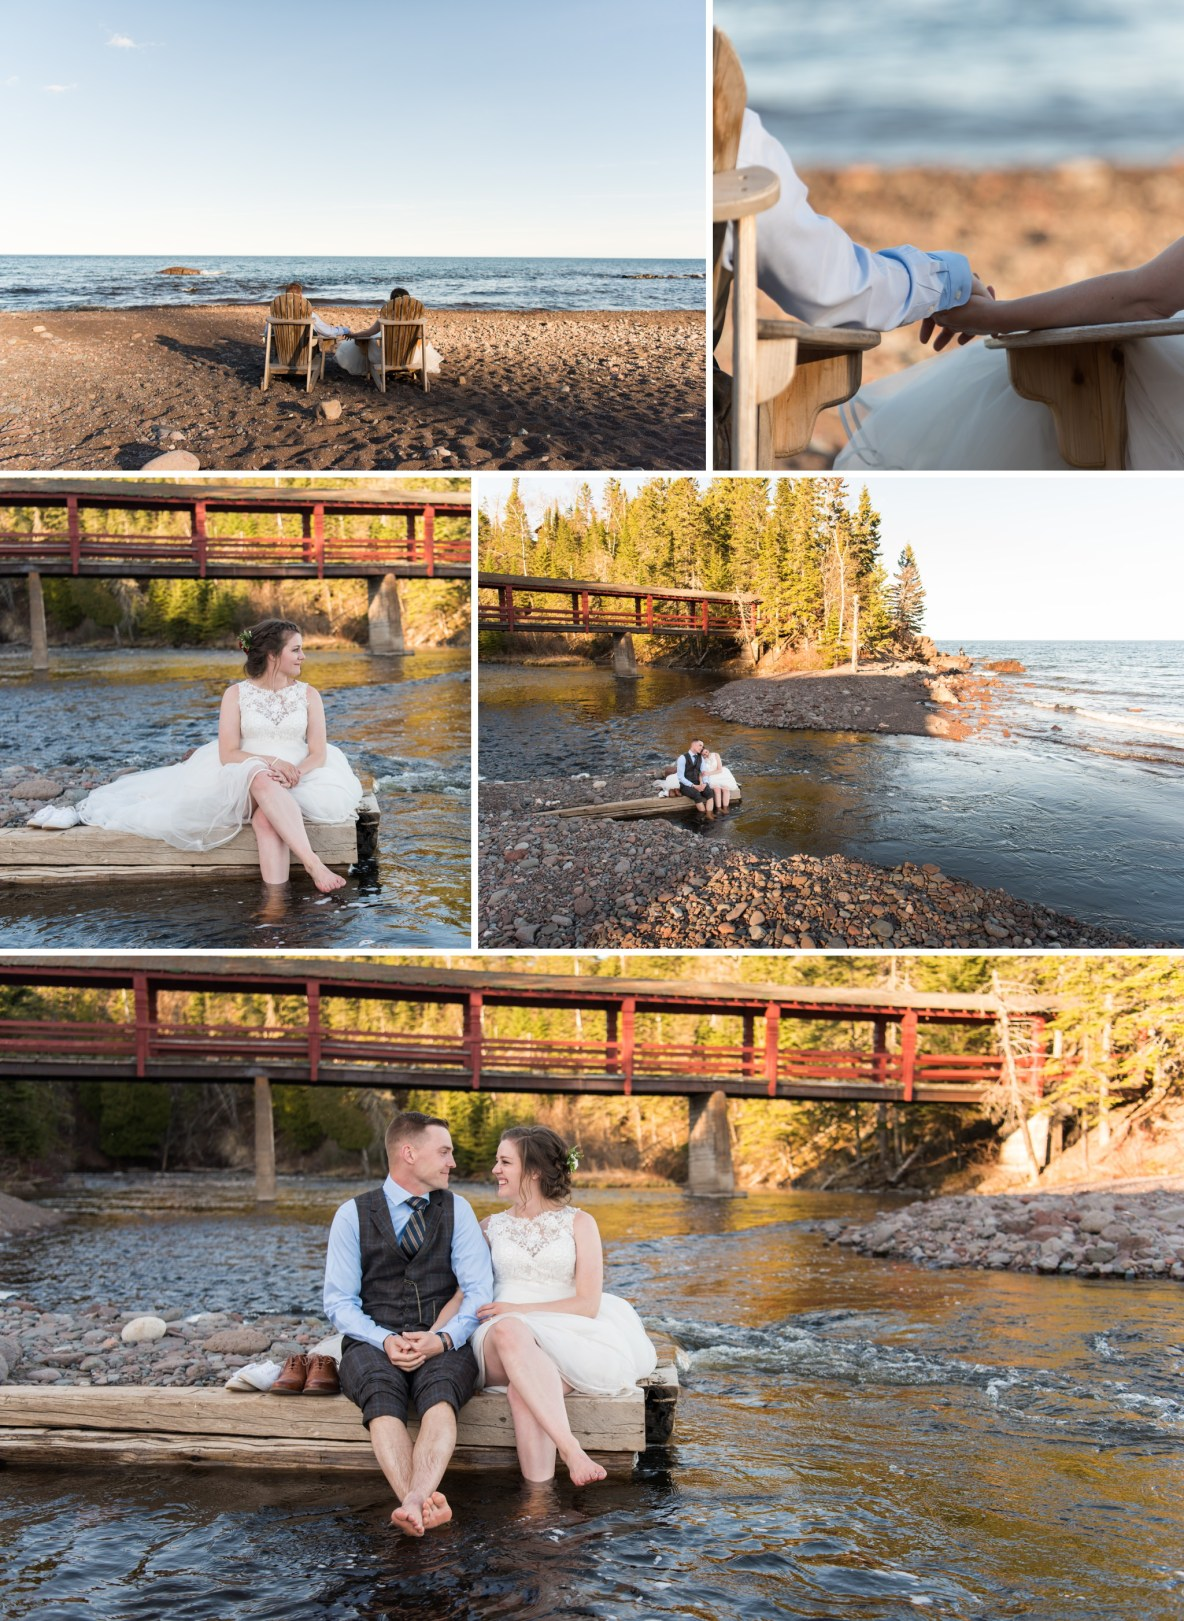 Photos of the bride and groom outside by the lake.